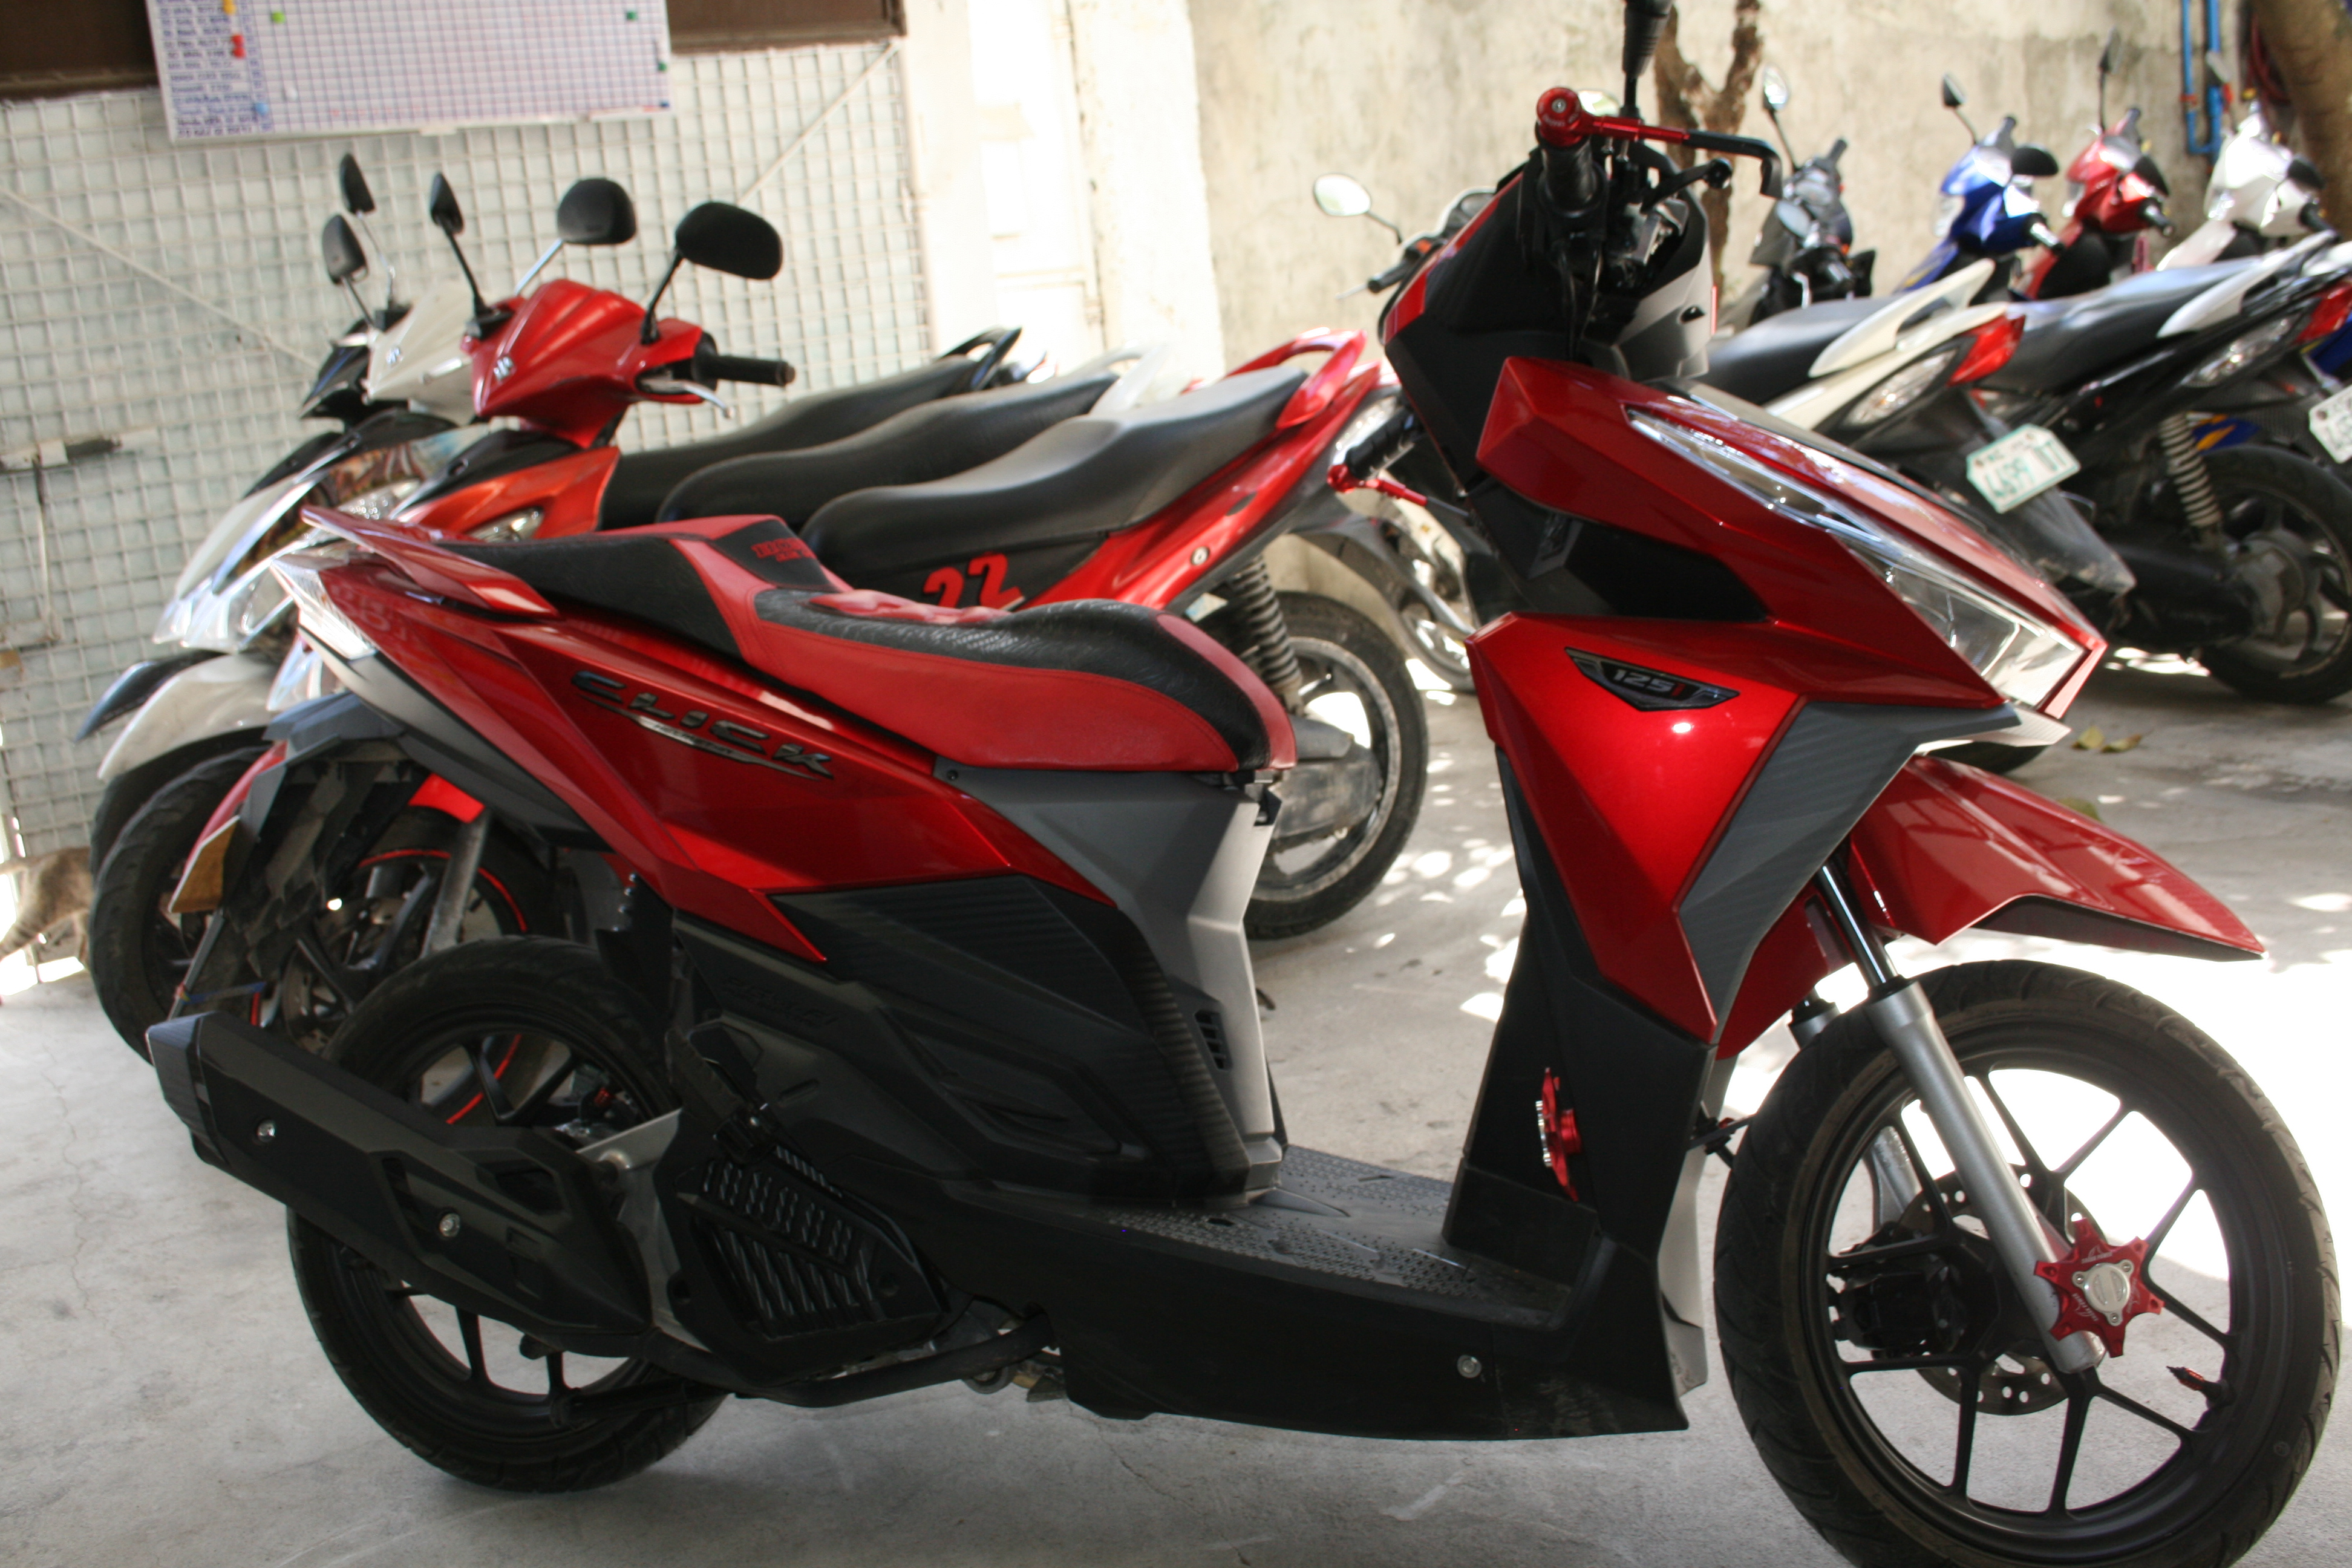 Rent A Motorbike In Cebu City - Reliable  Cheap